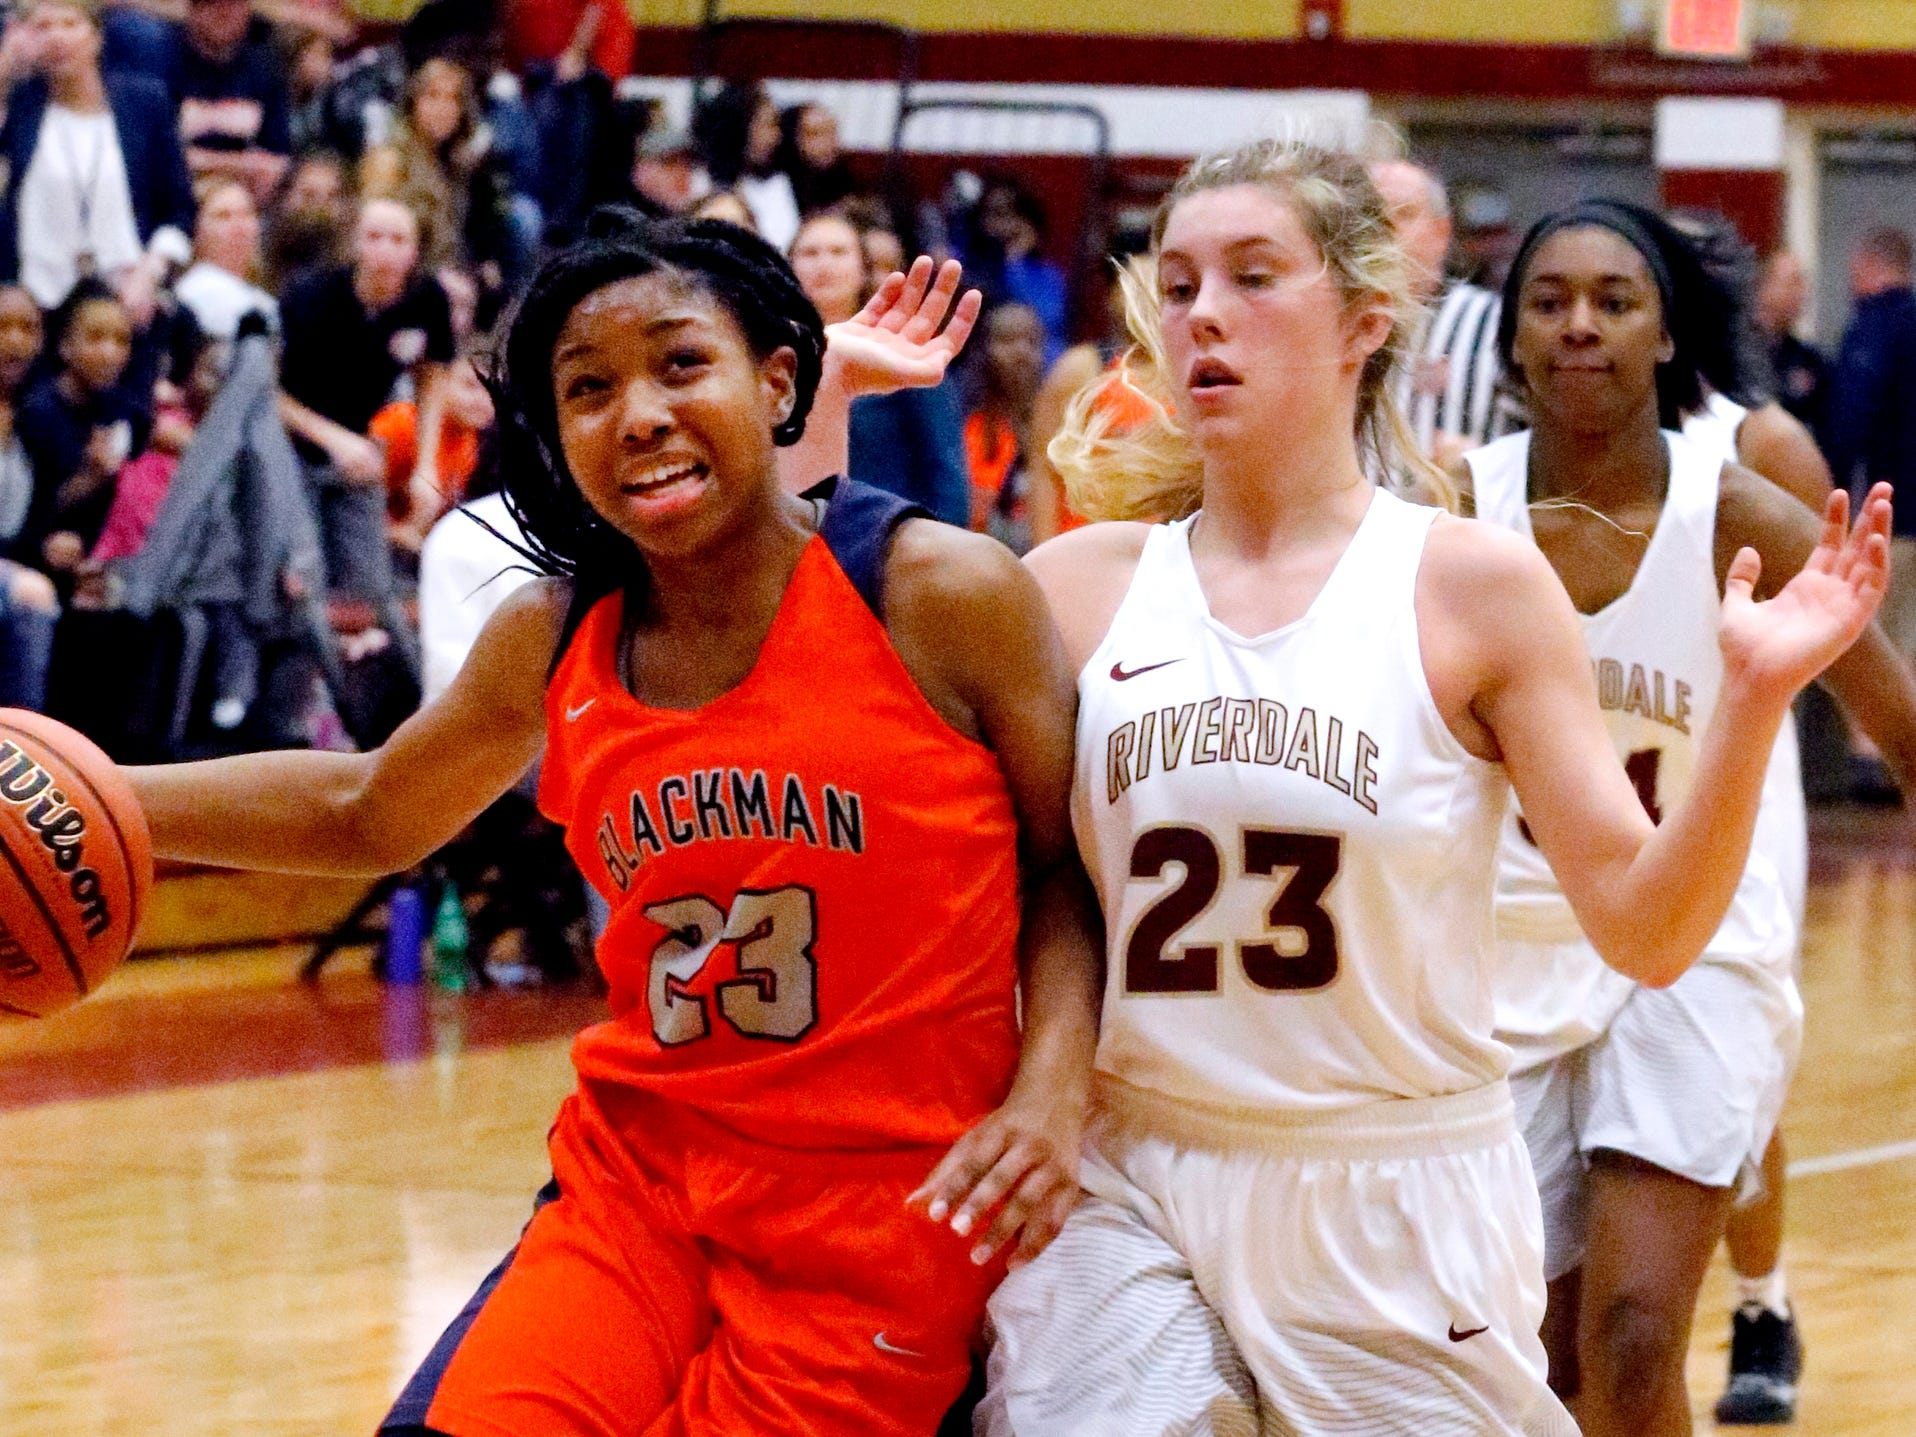 Blackman's Iyana Moore (23) goes up for a shot as Riverdale's Jalyn Hollcomb (23) guards her on Tuesday Jan. 8, 2019.